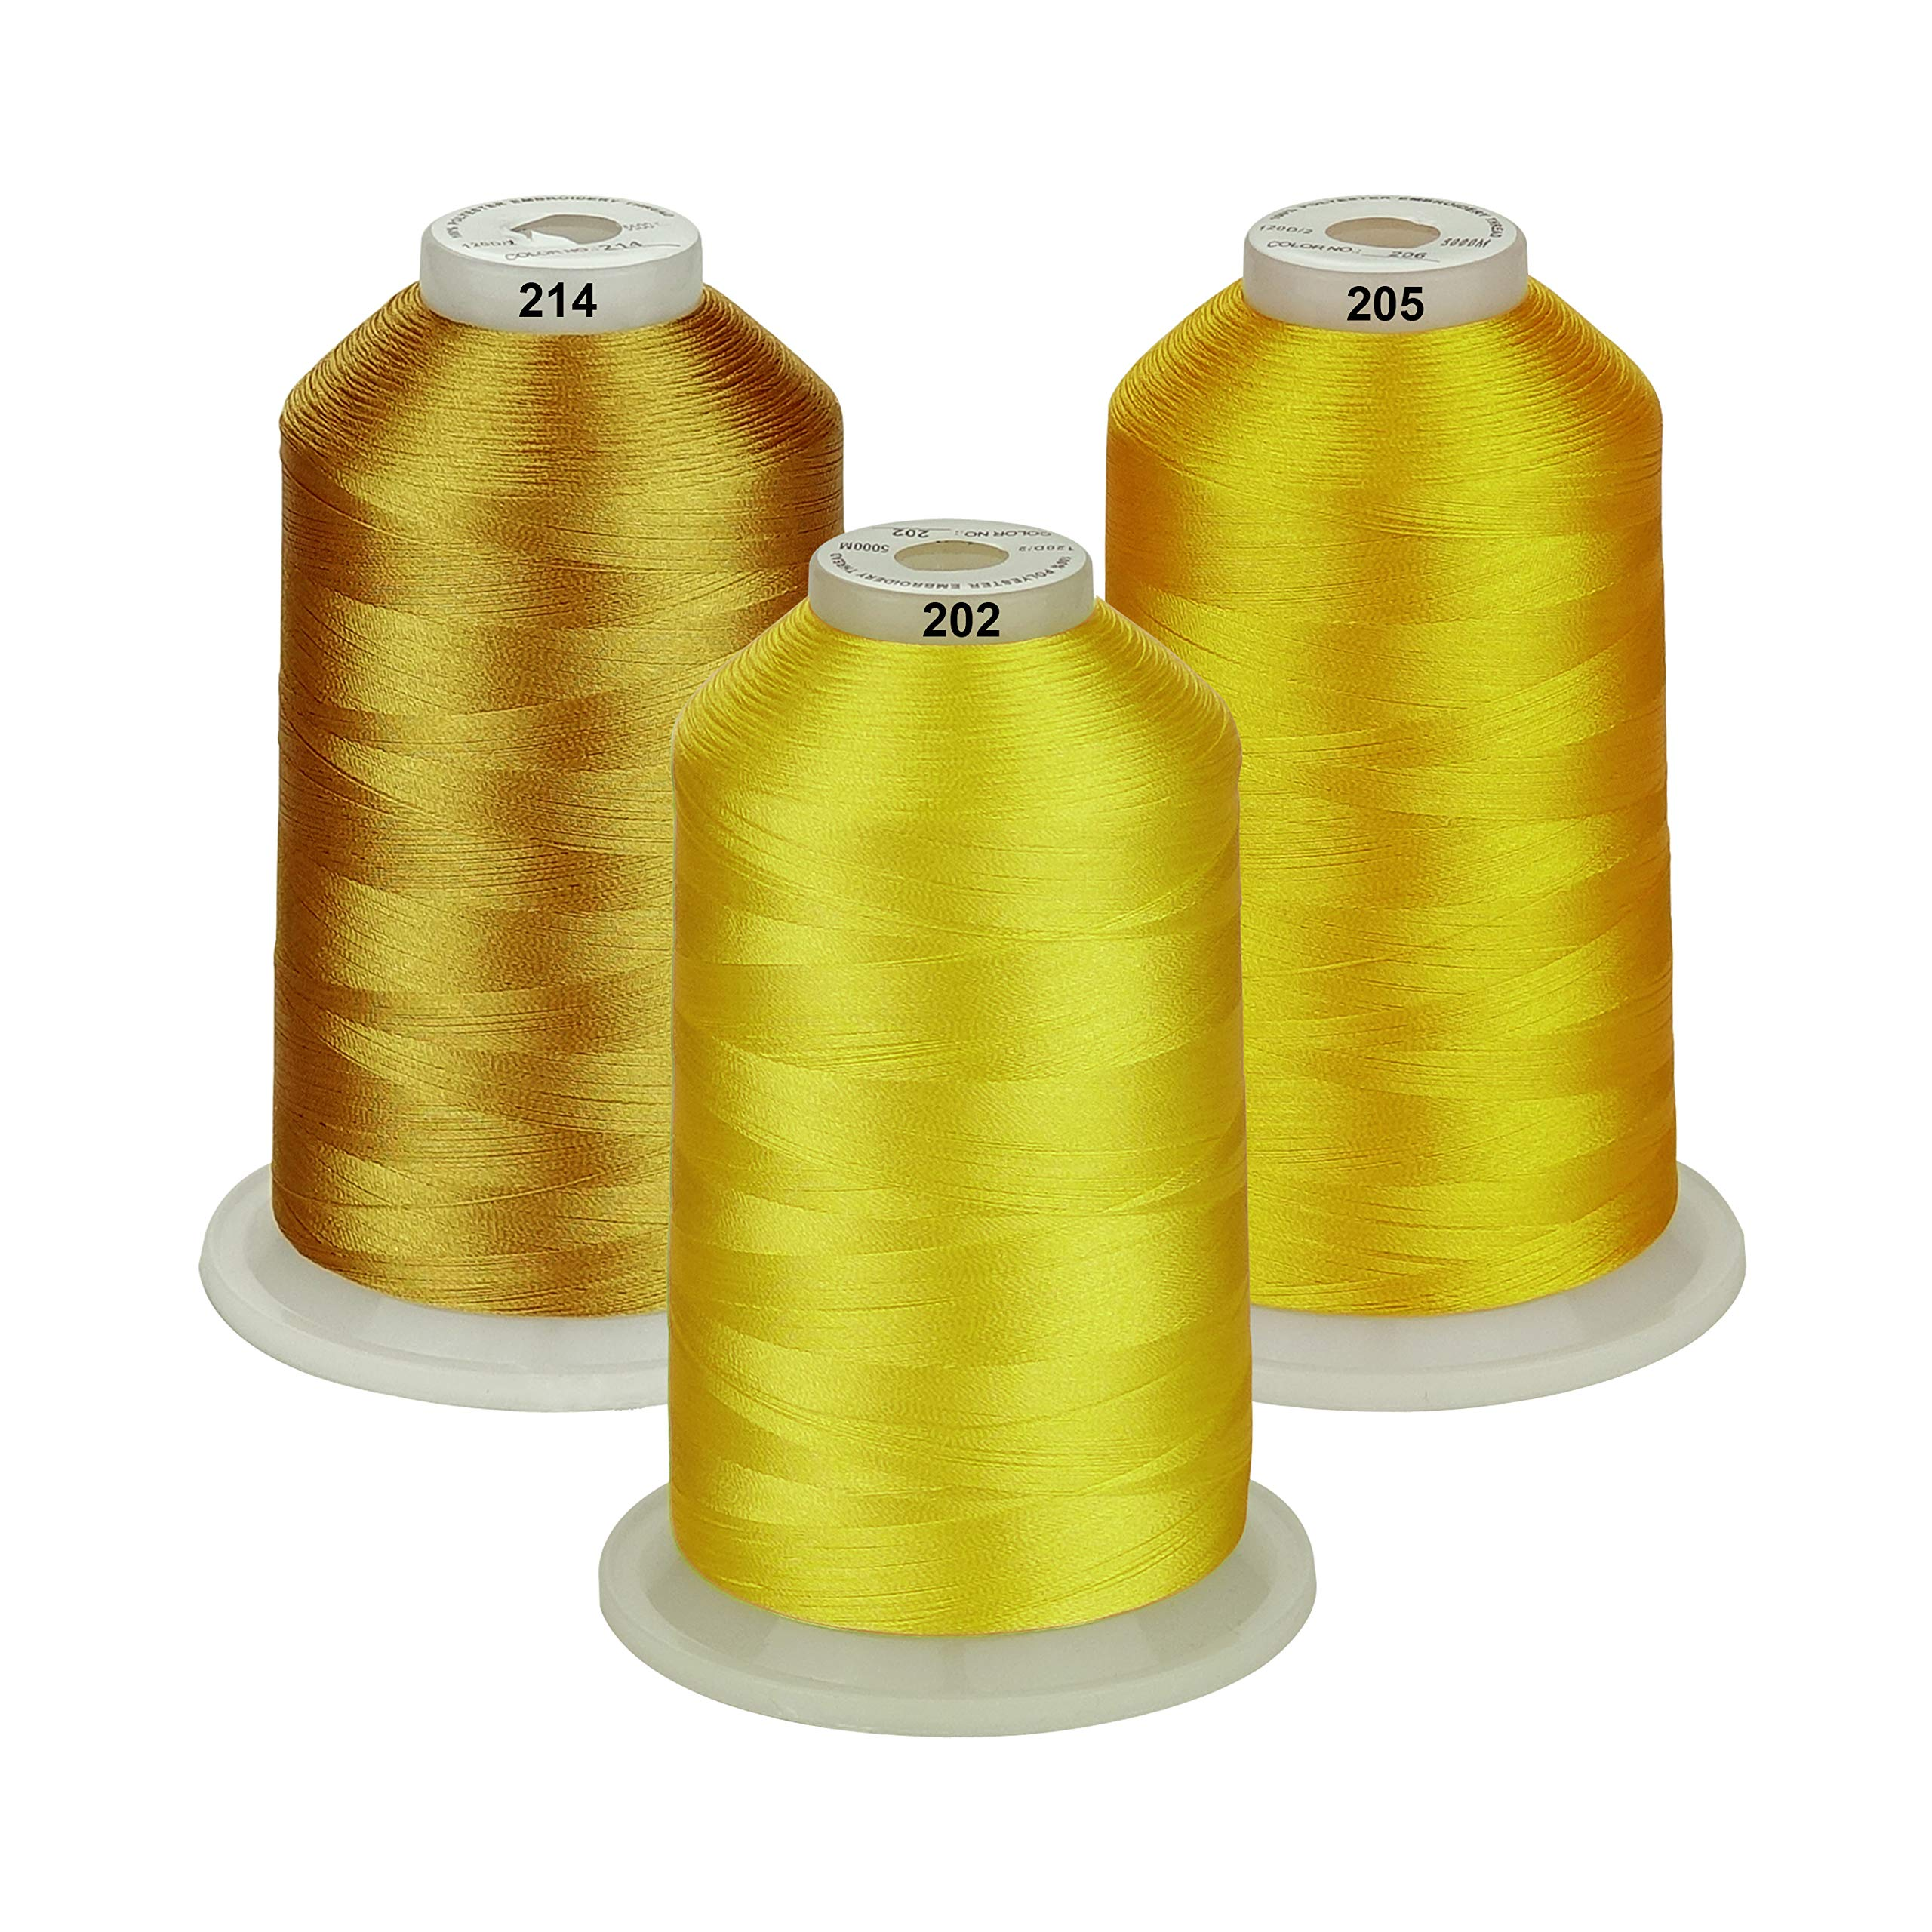 Various Assorted Color Packs of Polyester Embroidery Machine Thread Huge Spool 5000M for All Embroidery Machines 3xYELLOW New brothreads 25 Options